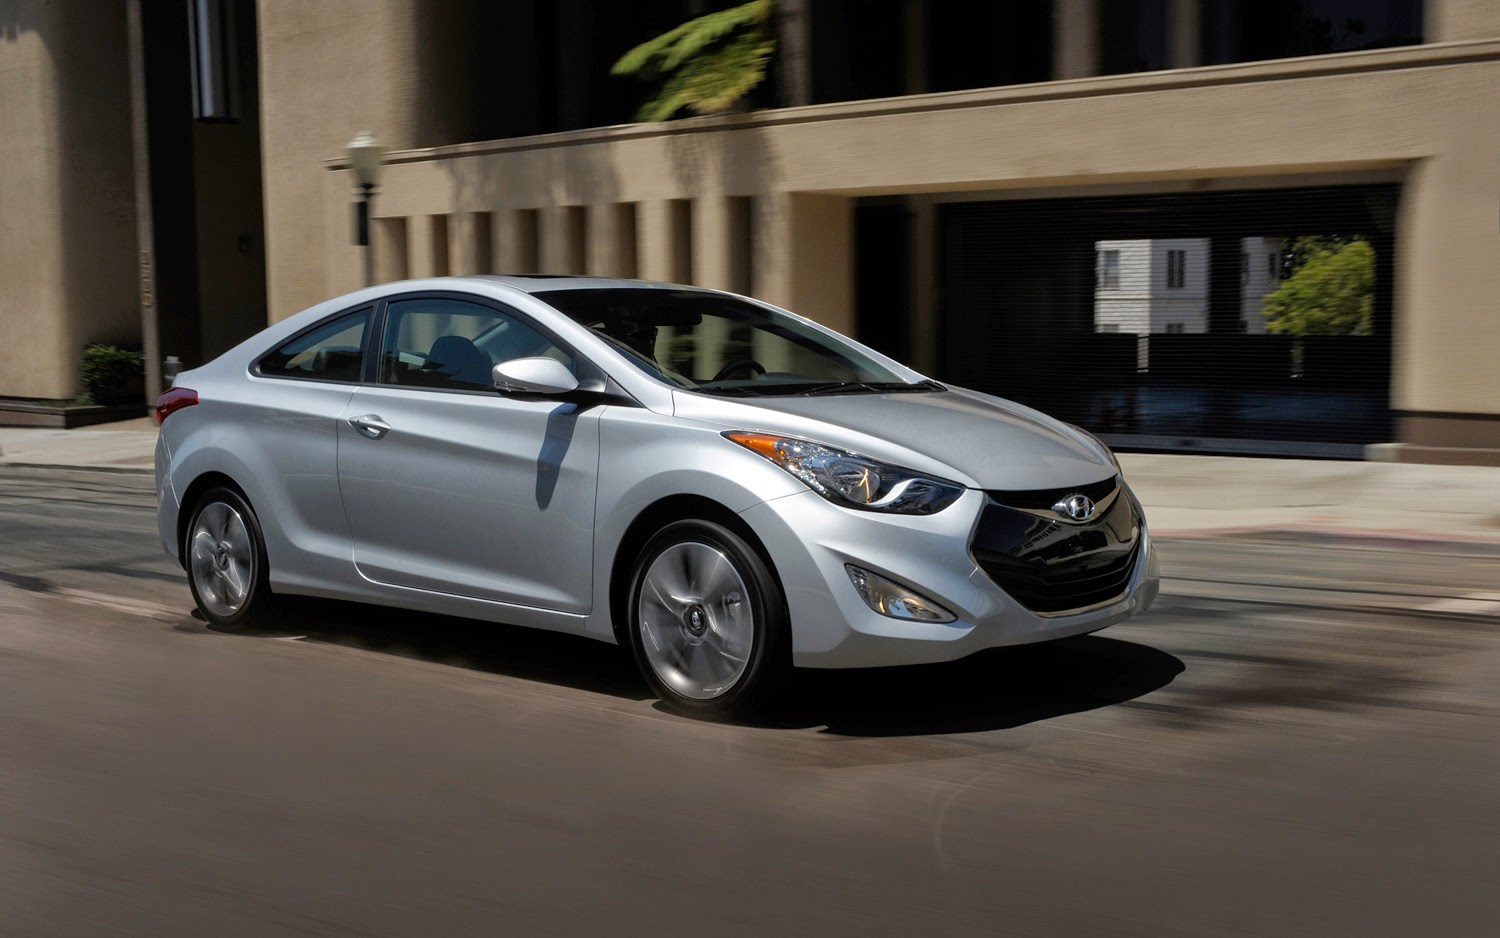 2015 hyundai elantra packed with value for shoppers country hills hyundai. Black Bedroom Furniture Sets. Home Design Ideas